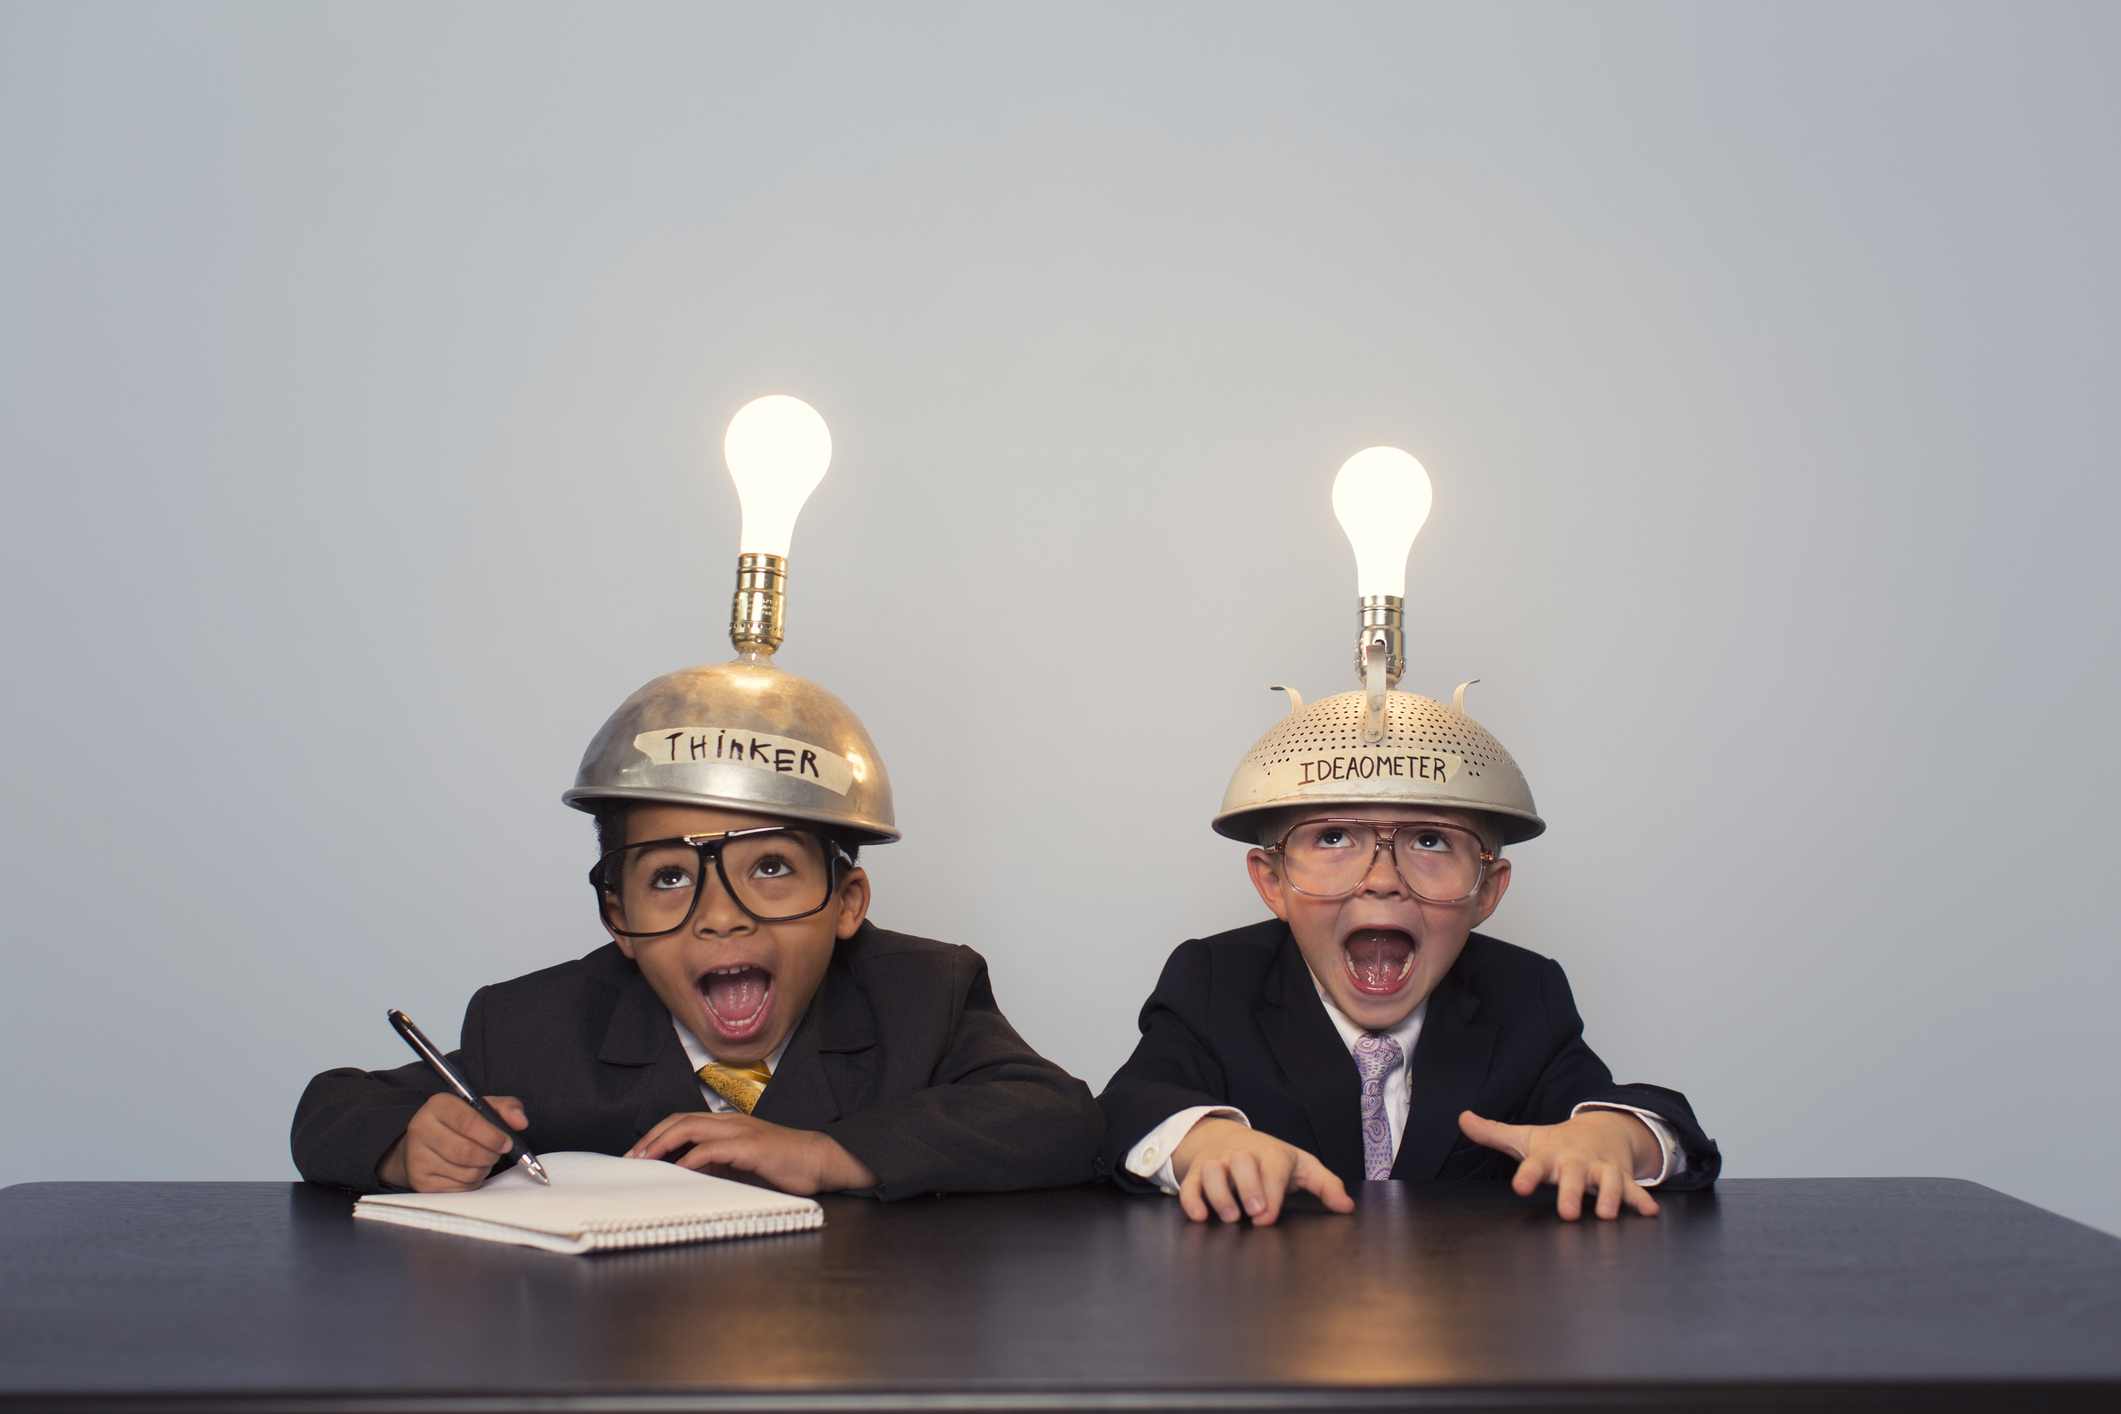 Two boys thinking in suits wearing thinking caps